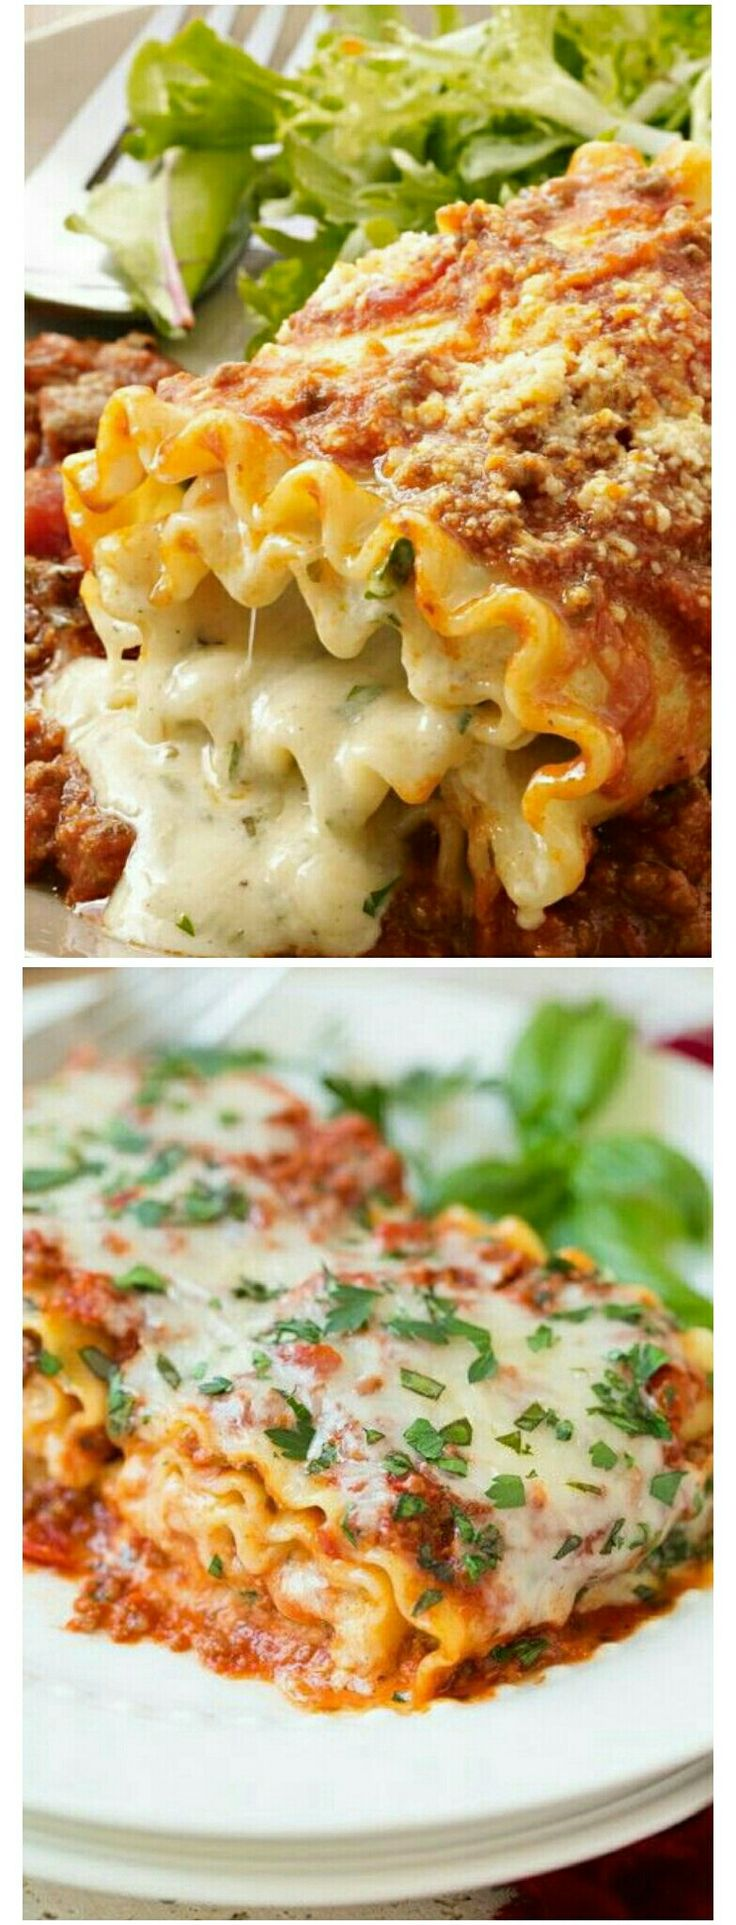 3671 best images about recetas para cocinar on pinterest for Facil de cocinar